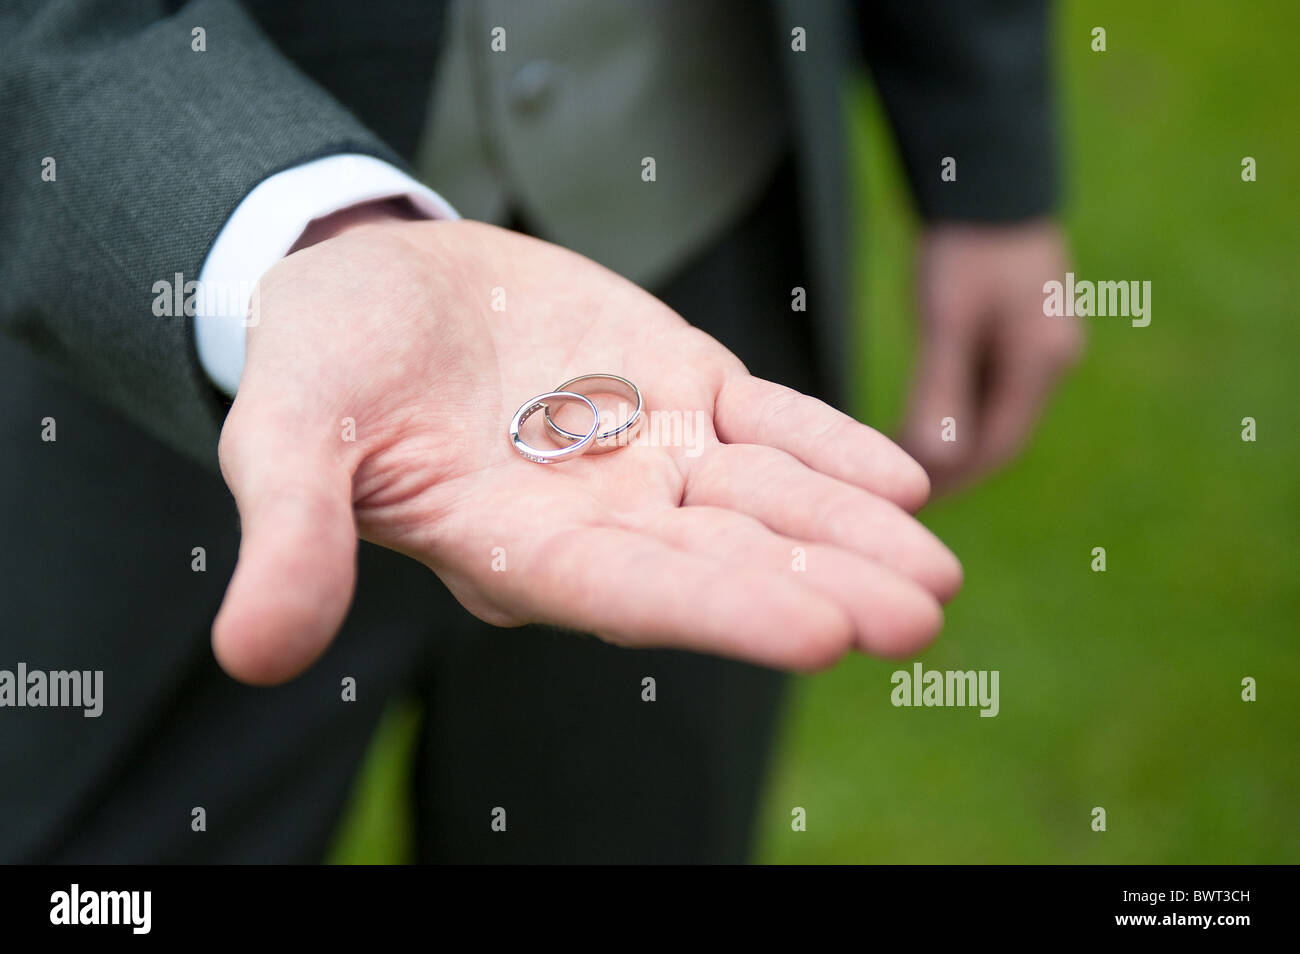 Rings In Hand Stock Photos & Rings In Hand Stock Images - Alamy